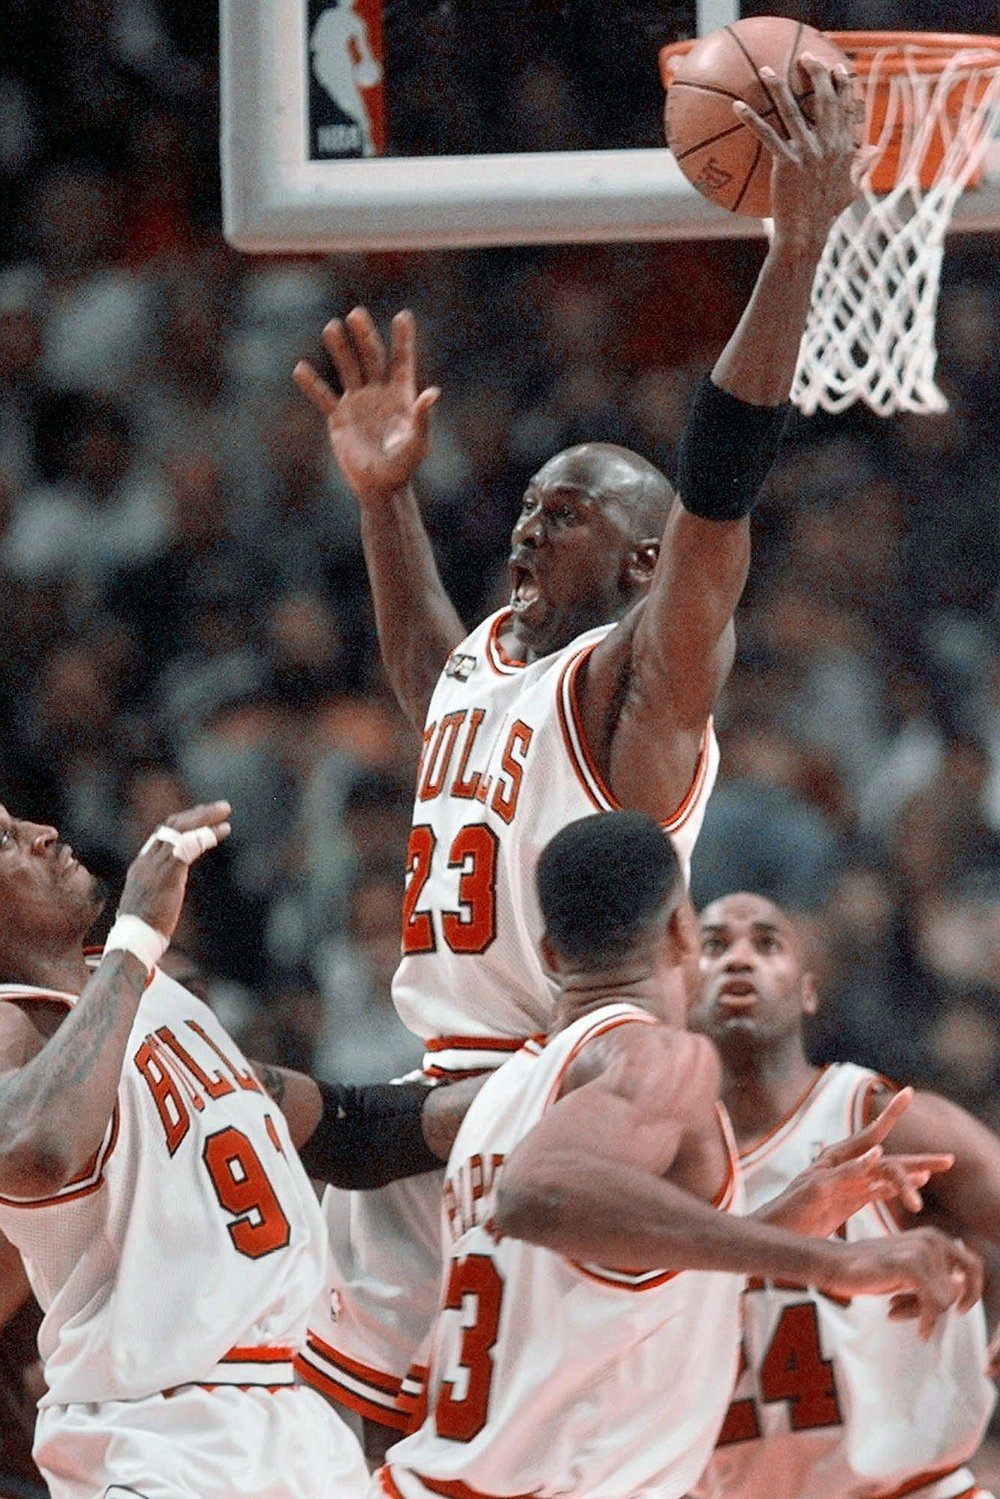 """In this June 10, 1998, file photo, Chicago Bulls' Michael Jordan reaches high above teammates for a rebound against the Utah Jazz in Game 4 in the NBA Finals in Chicago. Jordan described his final NBA championship season with the Chicago Bulls as a """"trying year. We were all trying to enjoy that year knowing it was coming to an end,"""" Jordan told Good Morning America on April 16.  (AP)"""